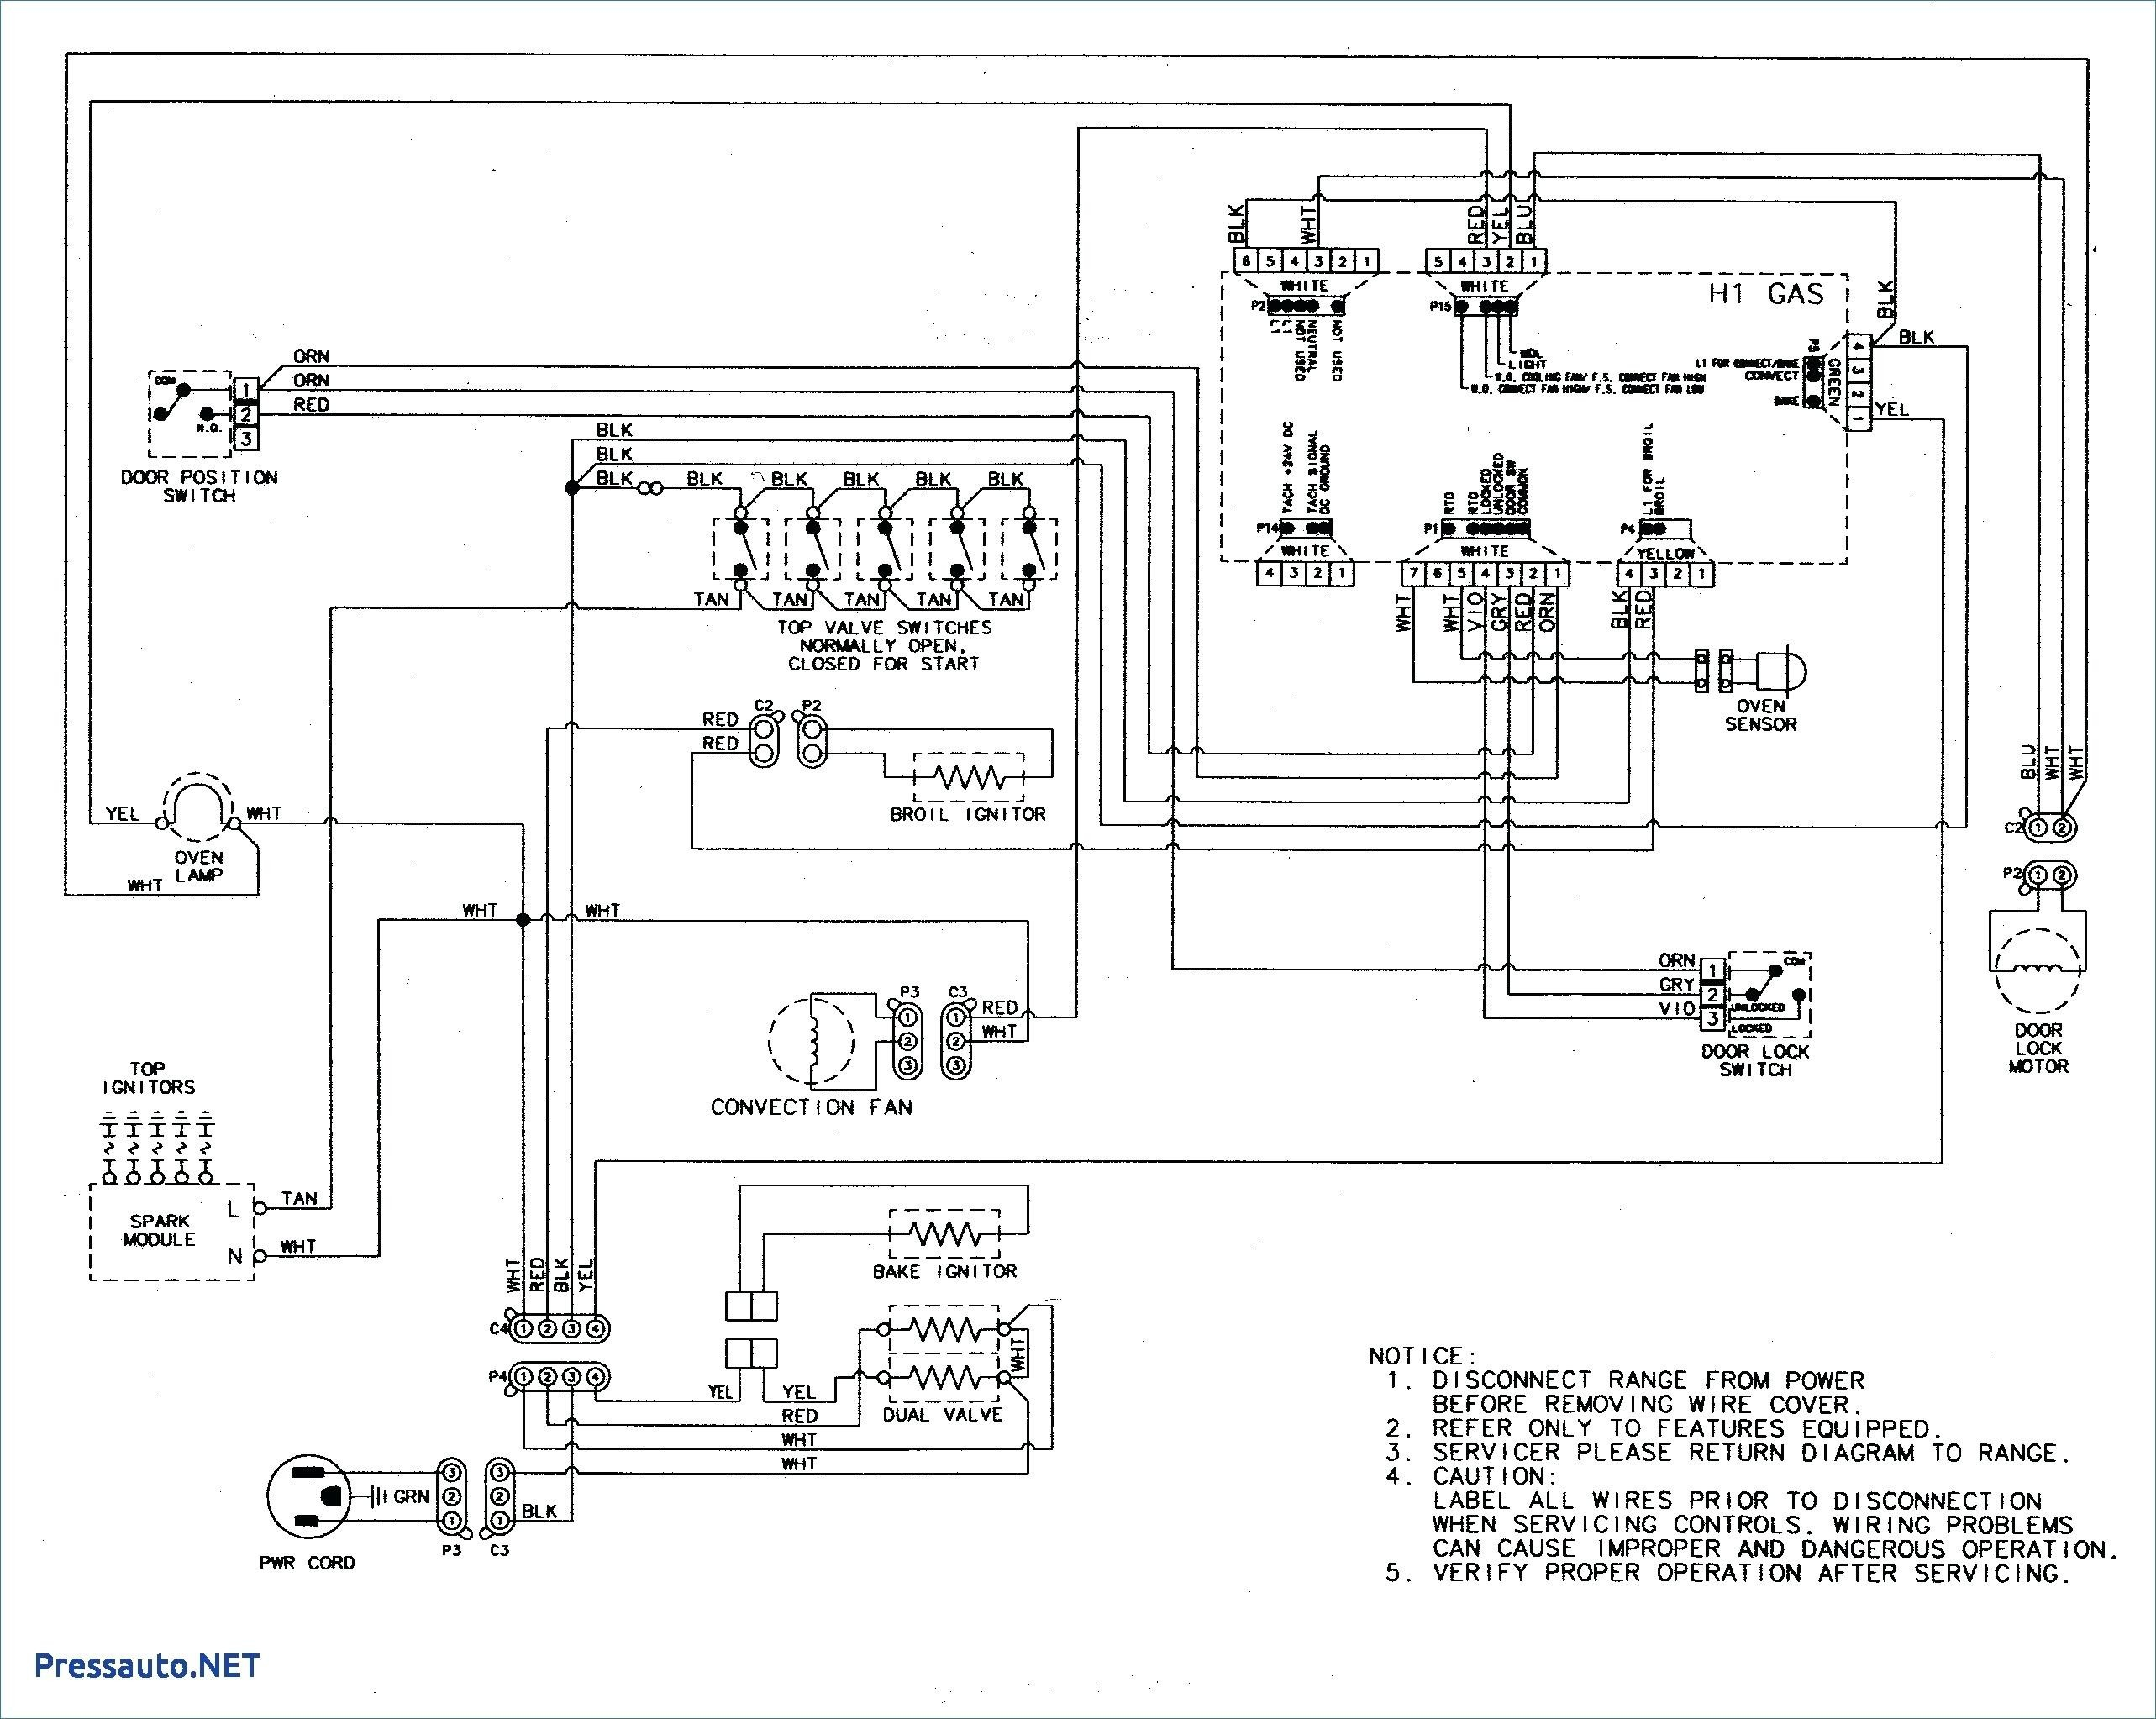 car ac wiring diagram pdf wire center u2022 rh sischool co auto electrical wiring diagram pdf auto gate wiring diagram pdf